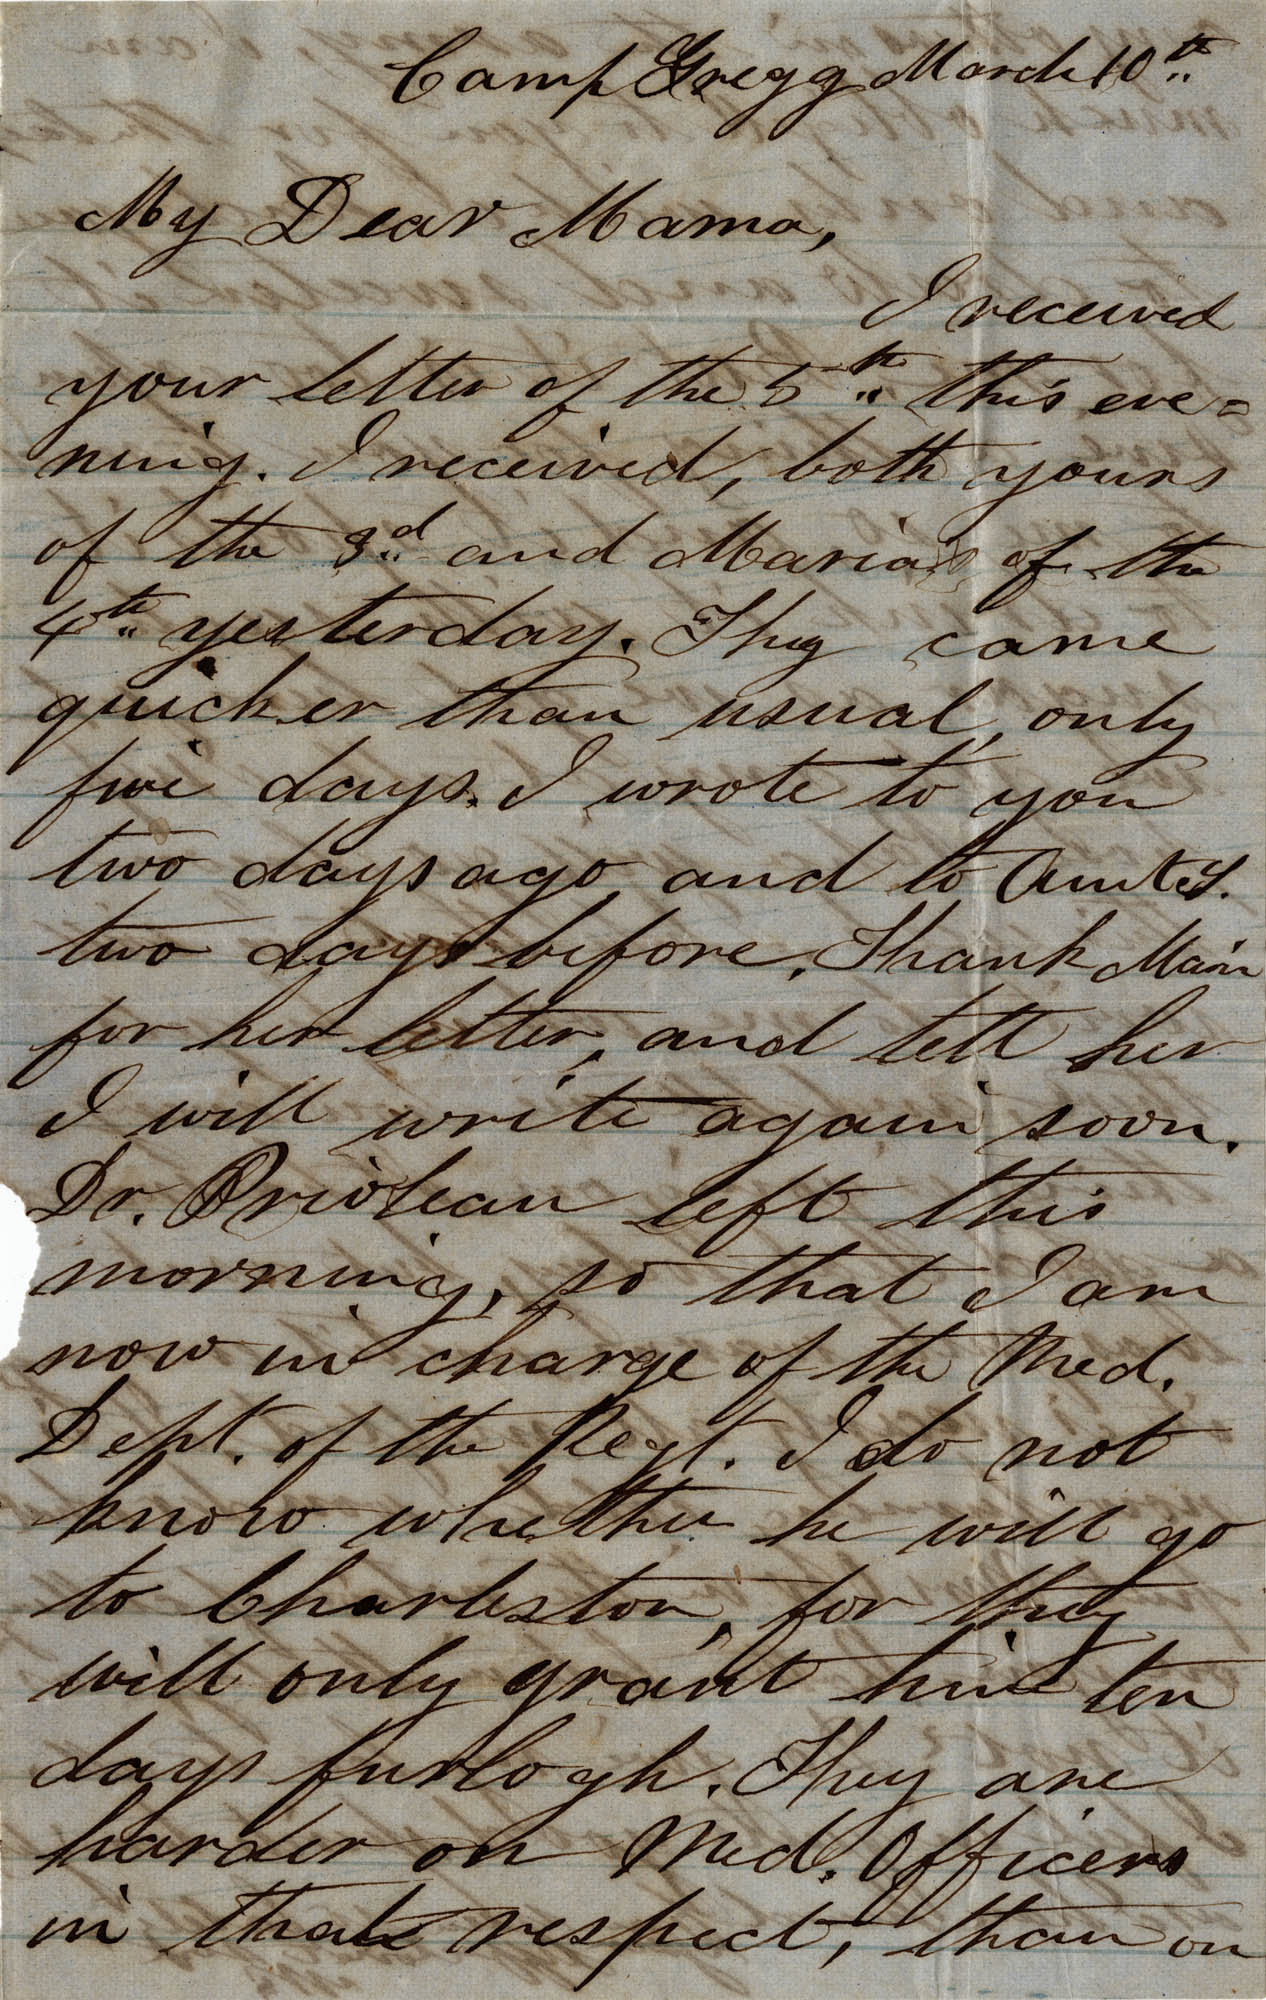 077. Willis Keith to Anna Bell Keith -- Mar. 10, 1863